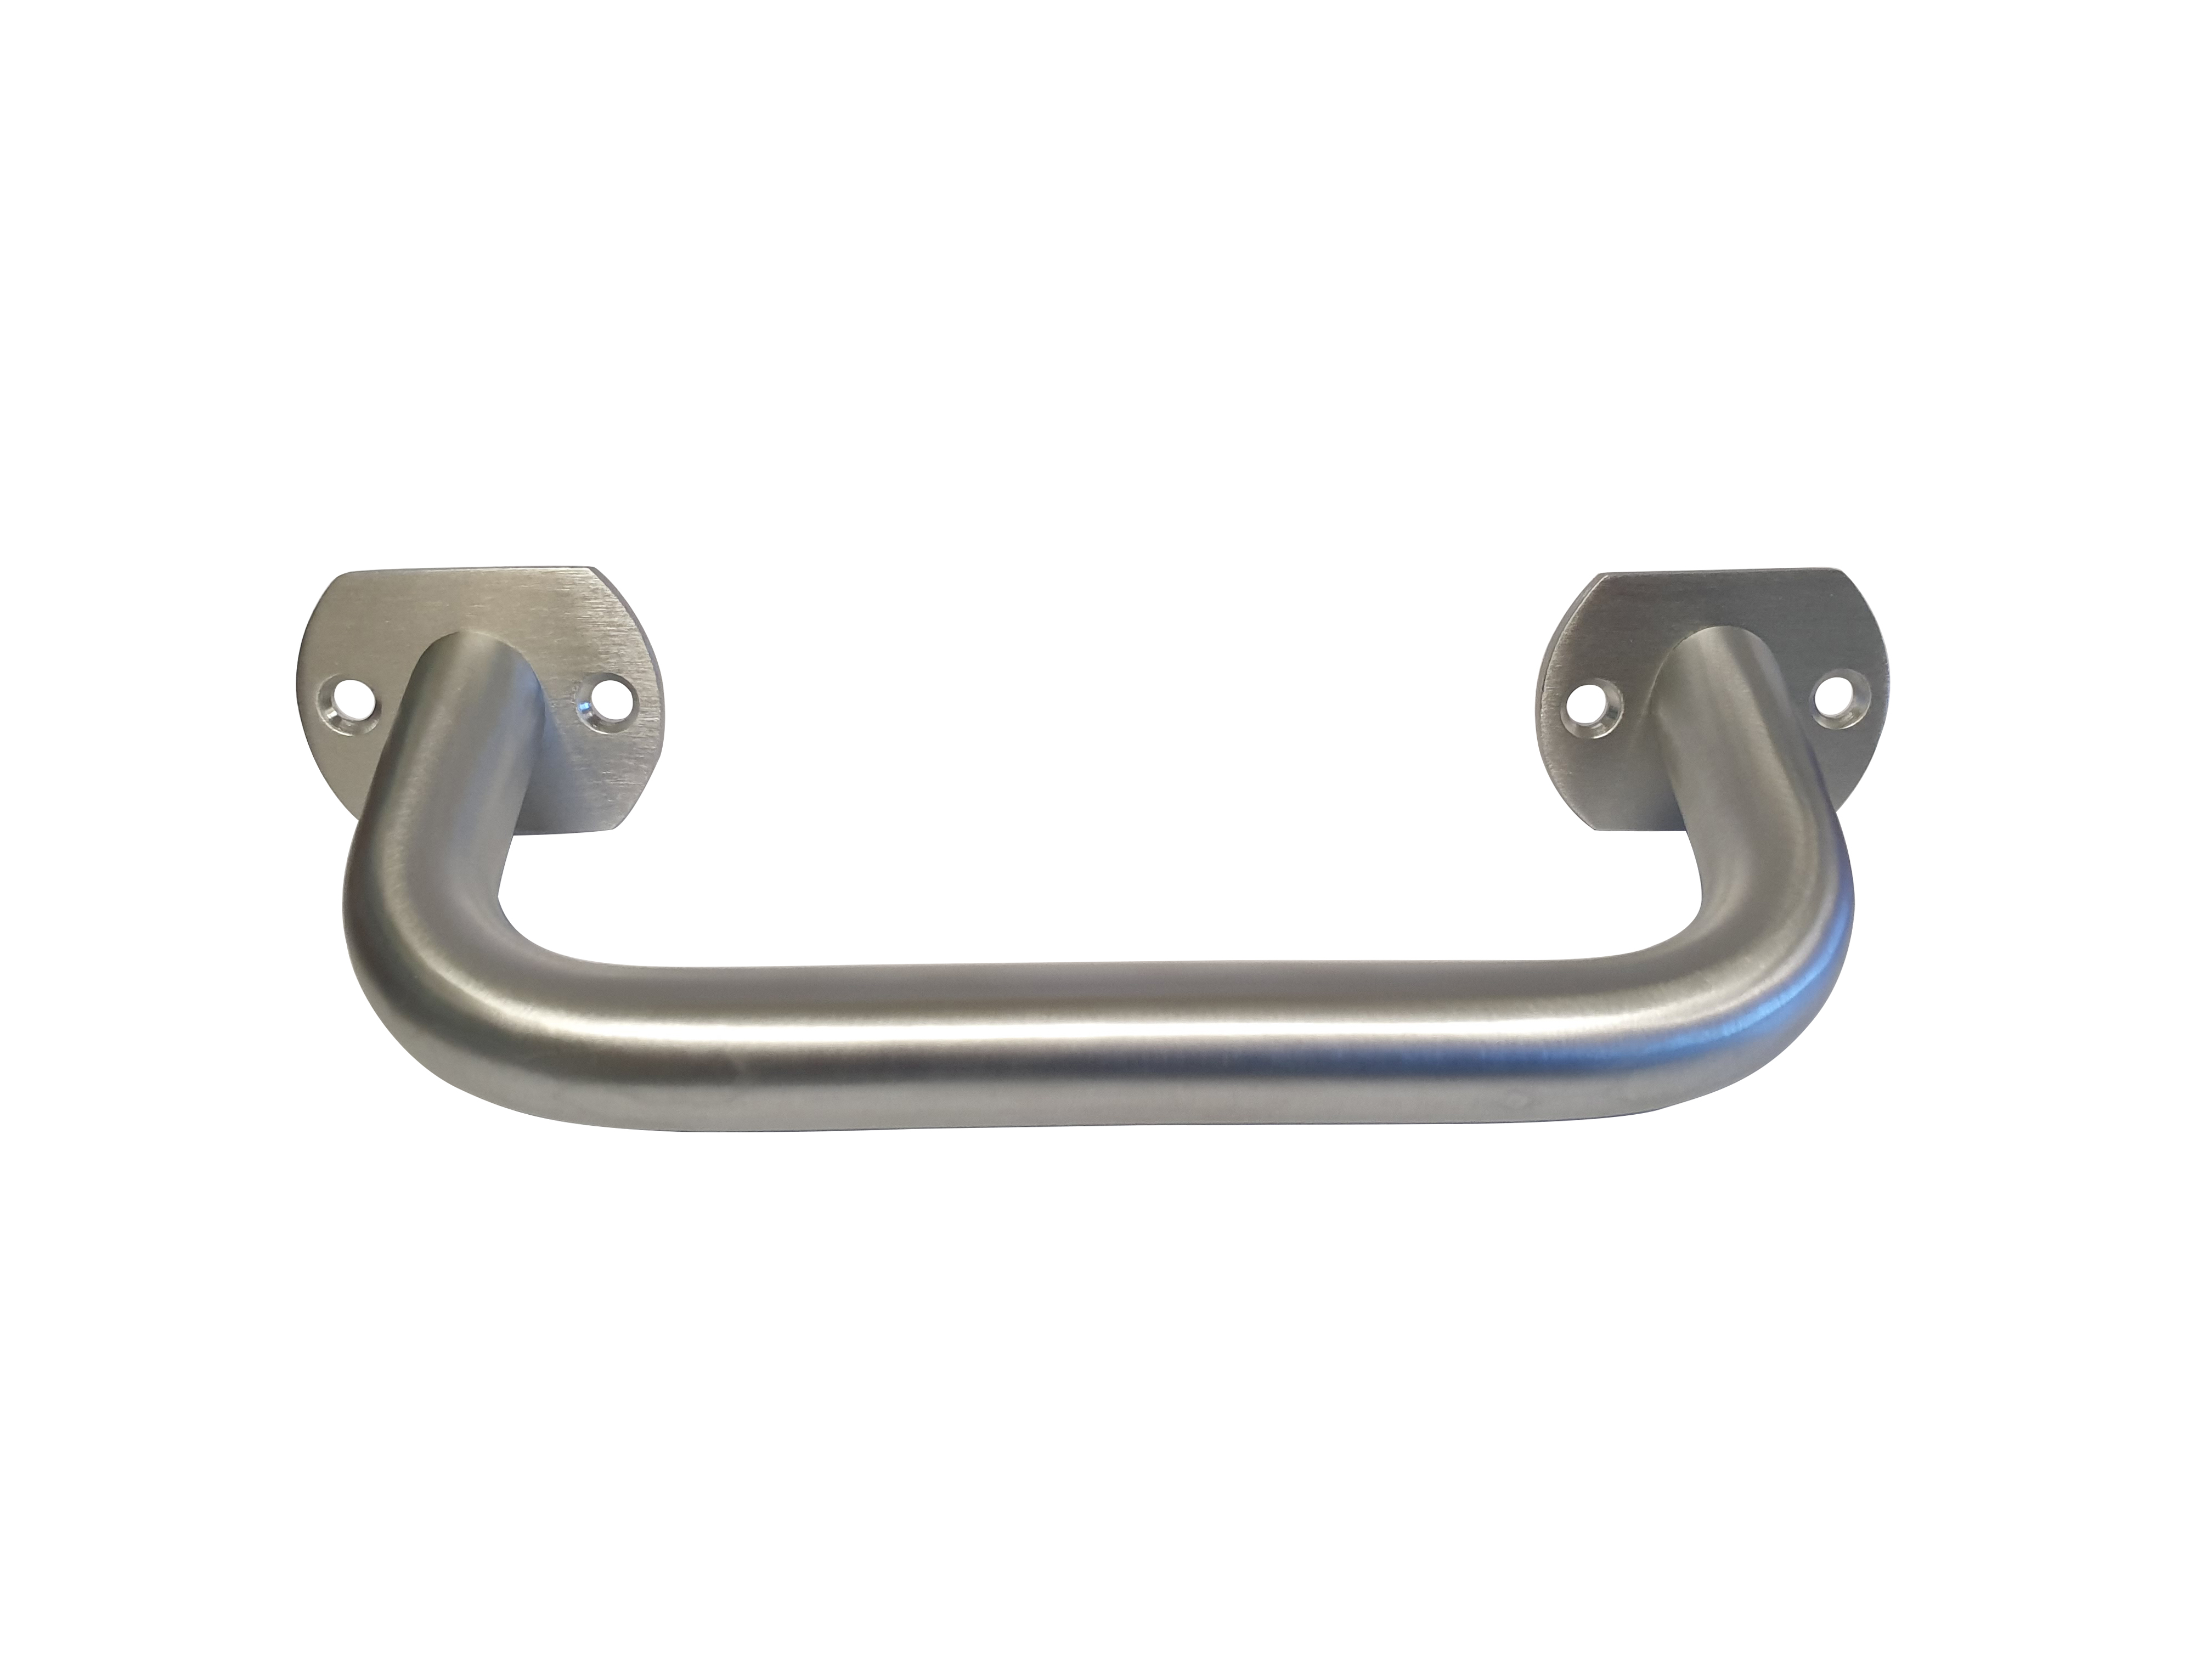 60° Beveled Angle Aluminium Pull Handle